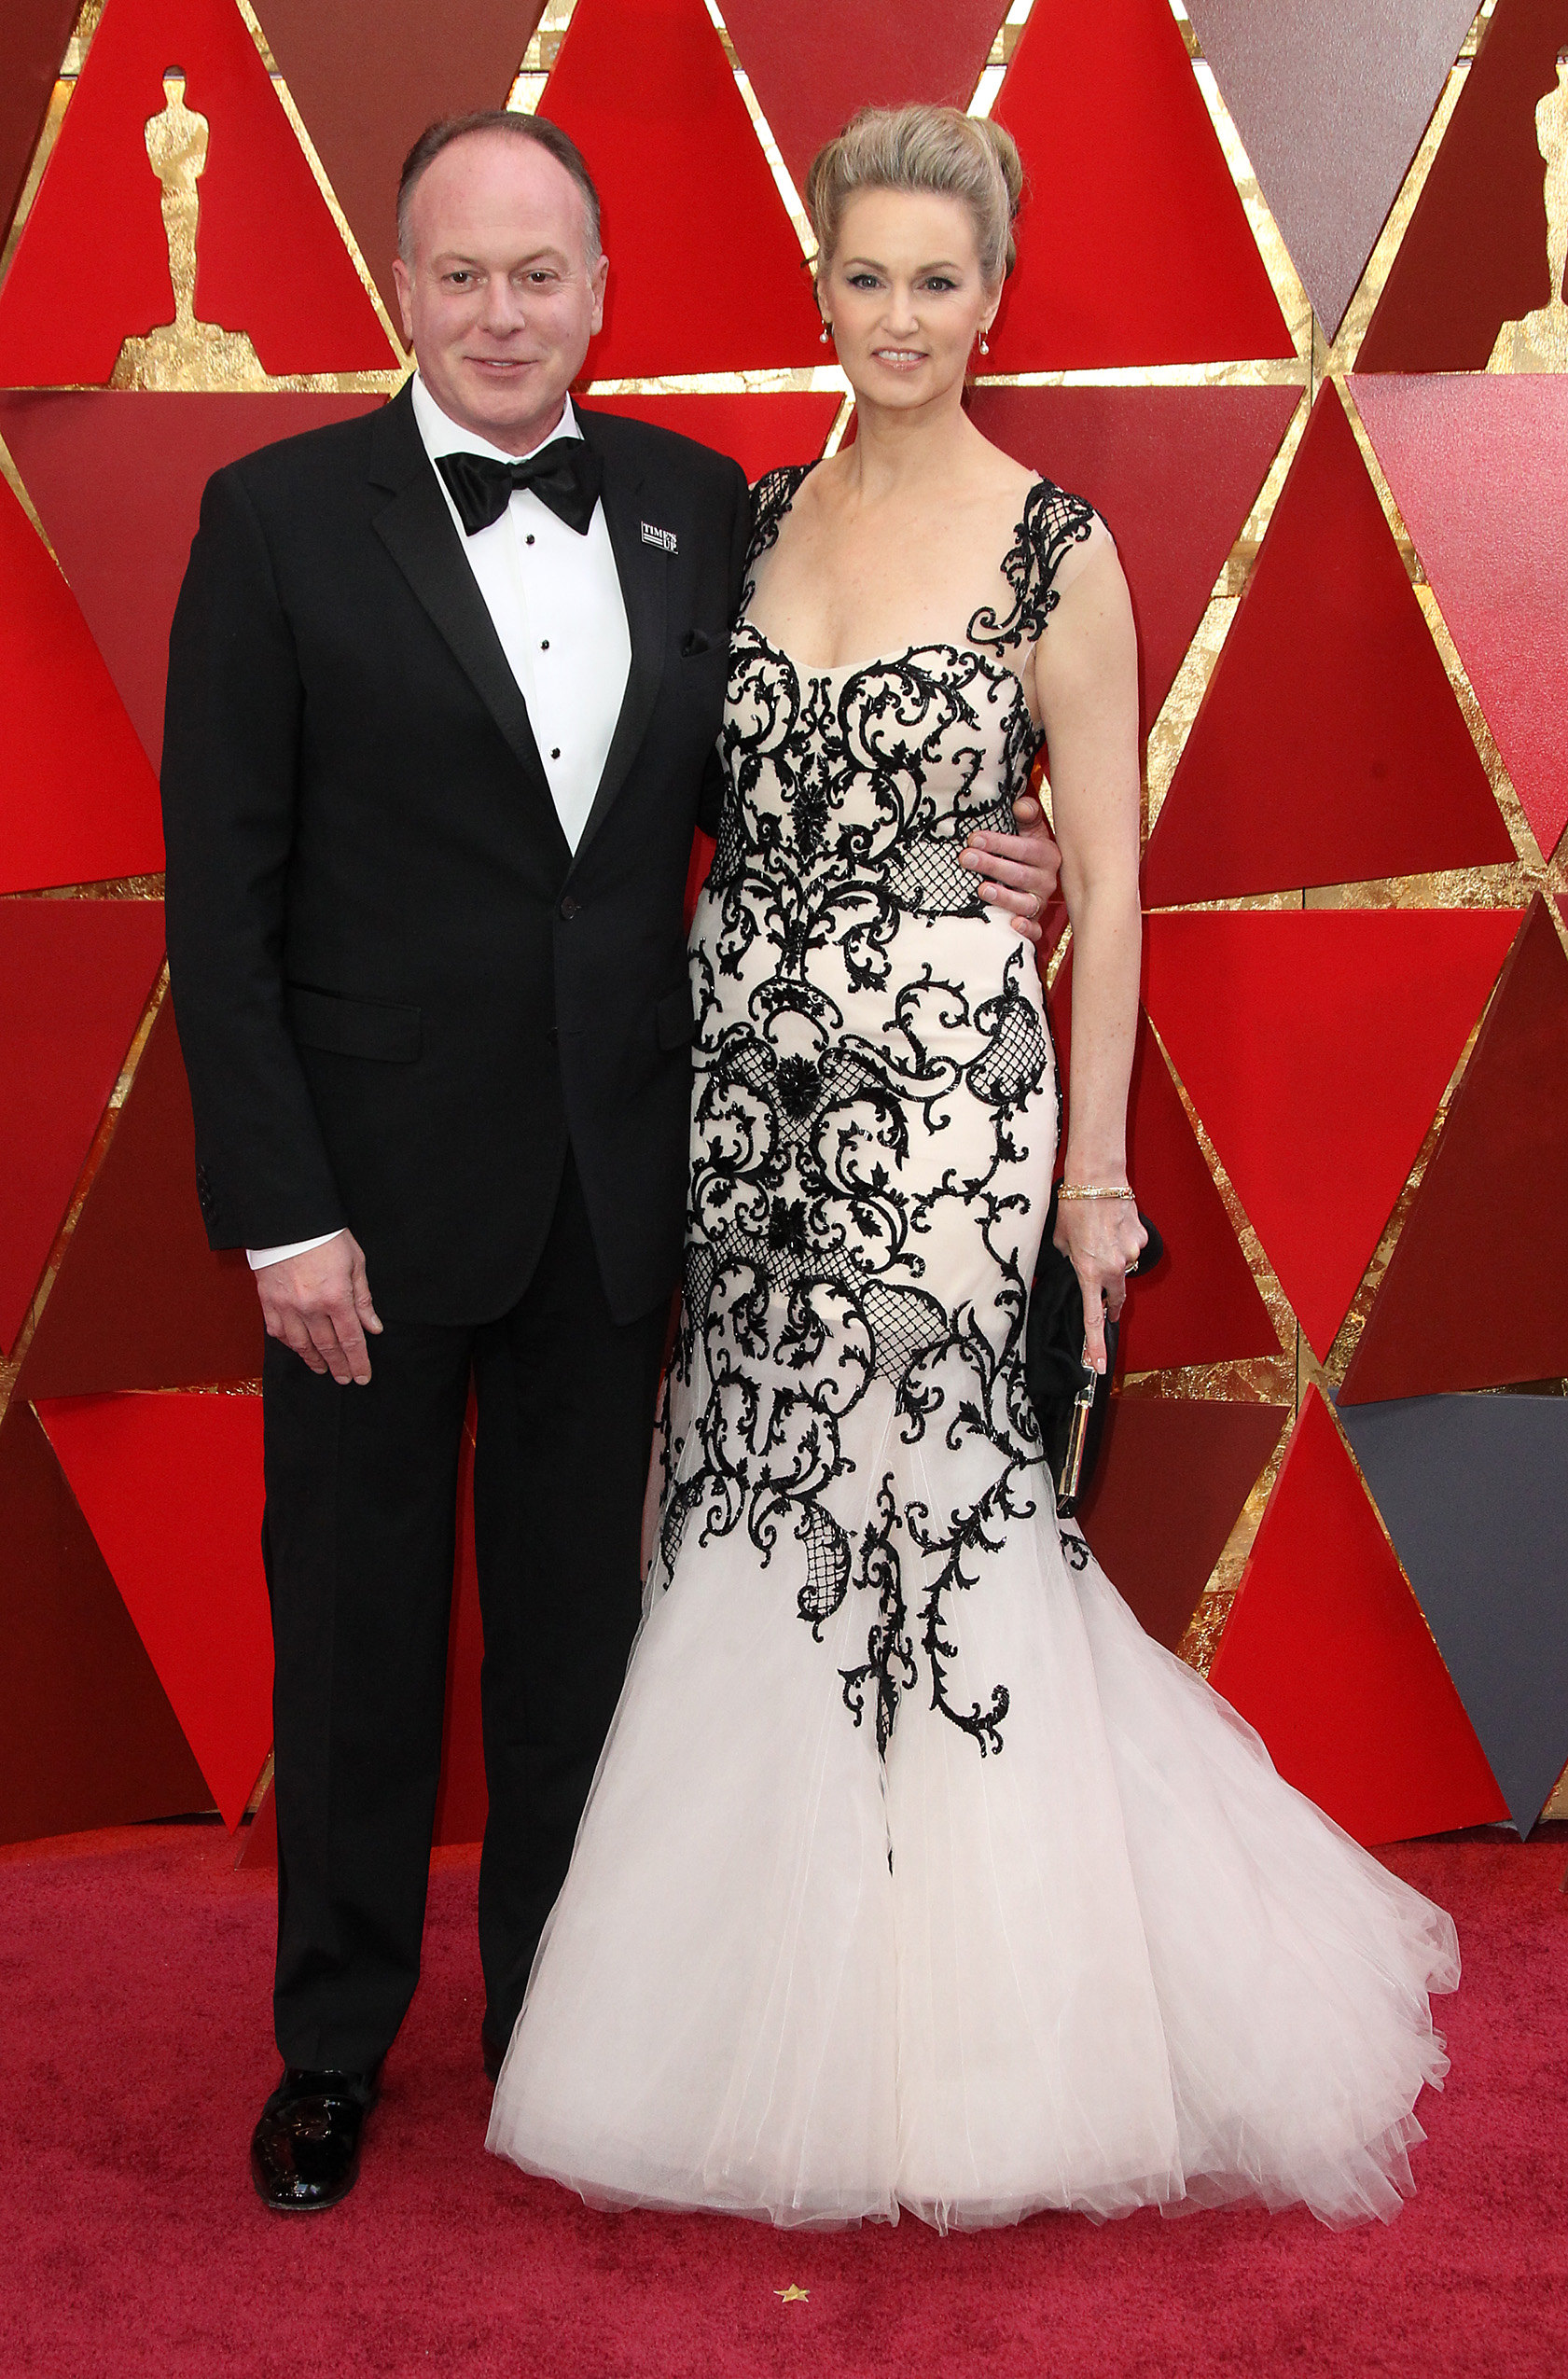 Tom McGrath and guest{&amp;nbsp;}arrive at the 90th Annual Academy Awards (Oscars) held at the Dolby Theater in Hollywood, California. (Image: Adriana M. Barraza/WENN.com)<p></p>